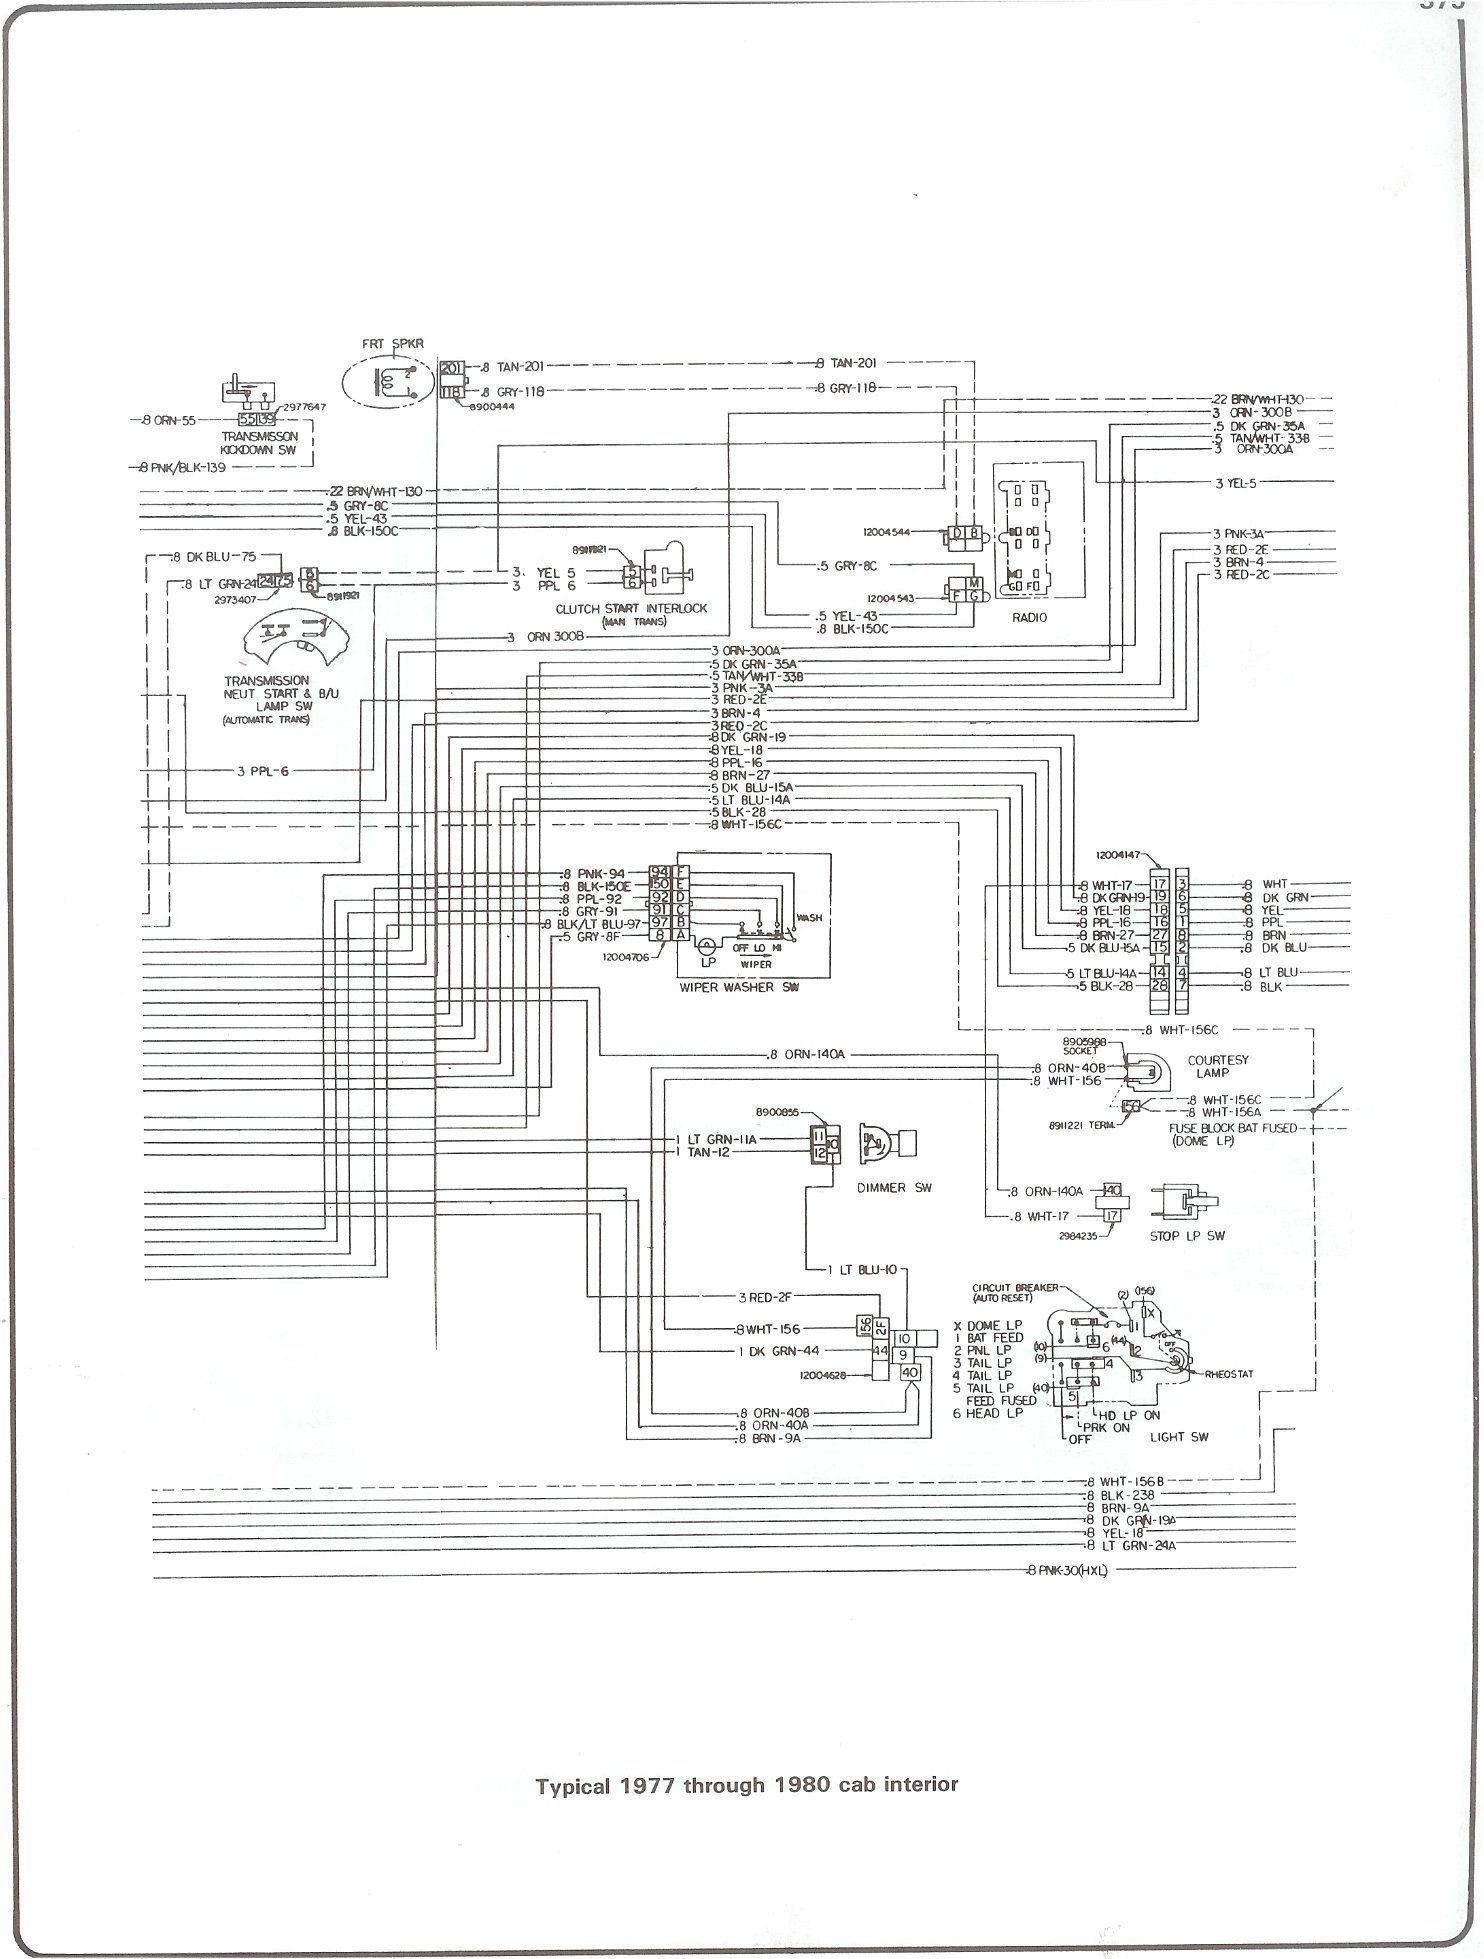 complete 73 87 wiring diagrams rh forum 73 87chevytrucks com 2006 GMC Sierra Wiring Diagram 4L80E Wiring Harness Diagram